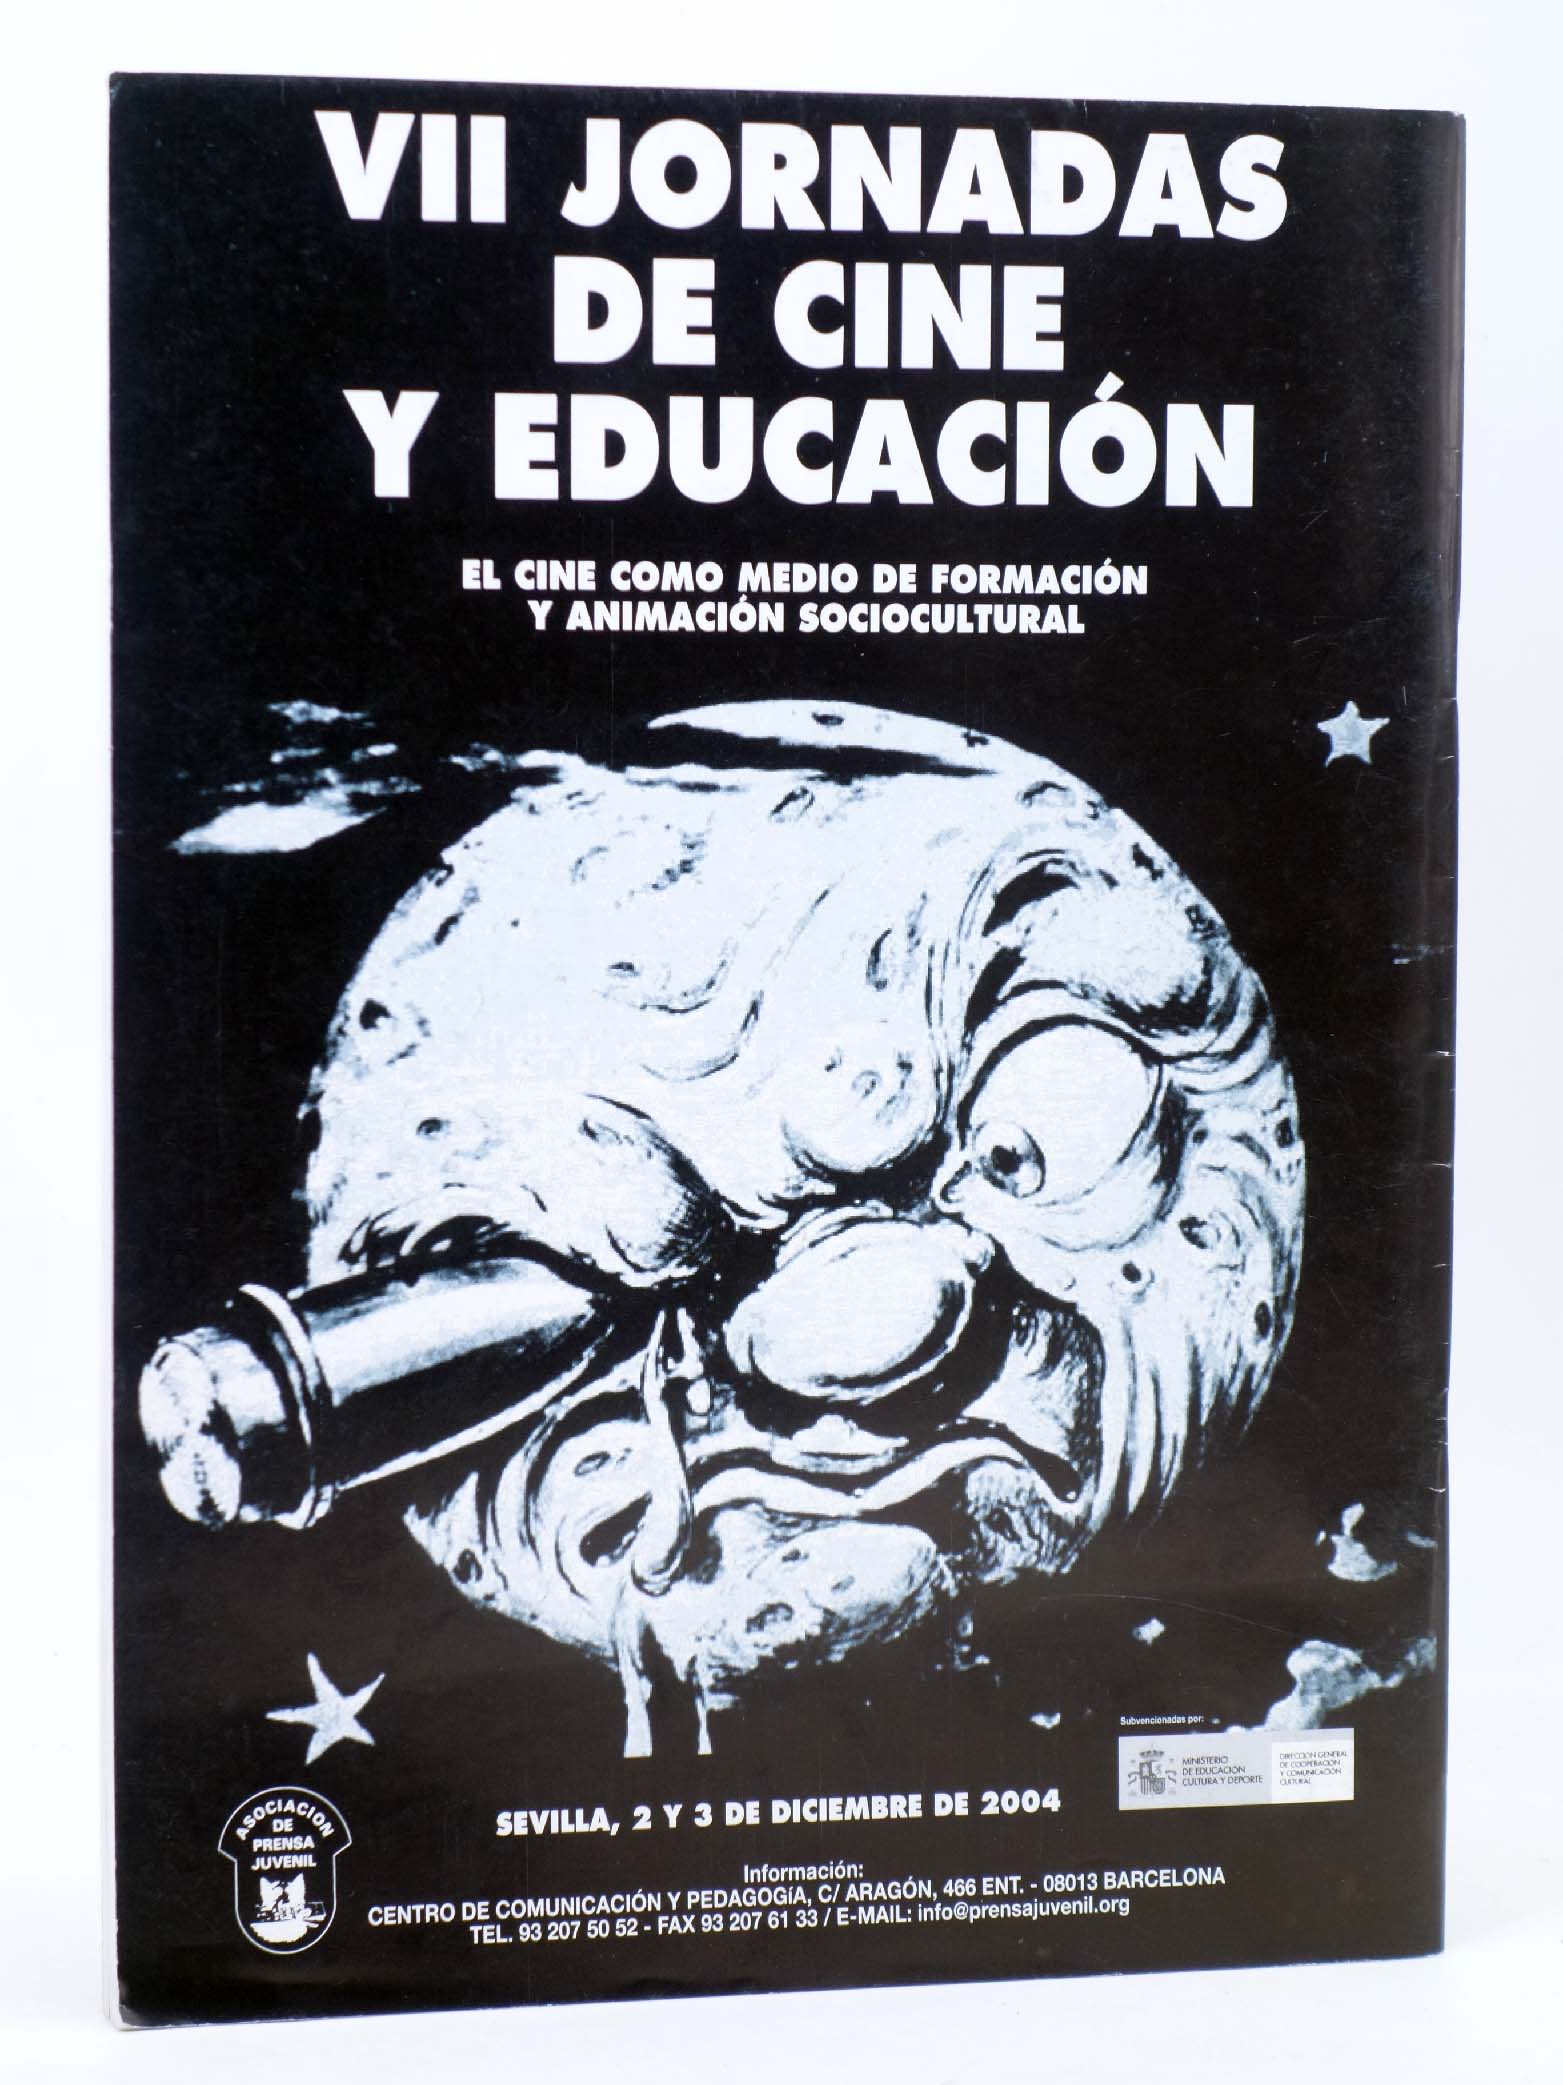 REVISTA MAKING OF, CUADERNOS DE CINE Y EDUCACIÓN 27